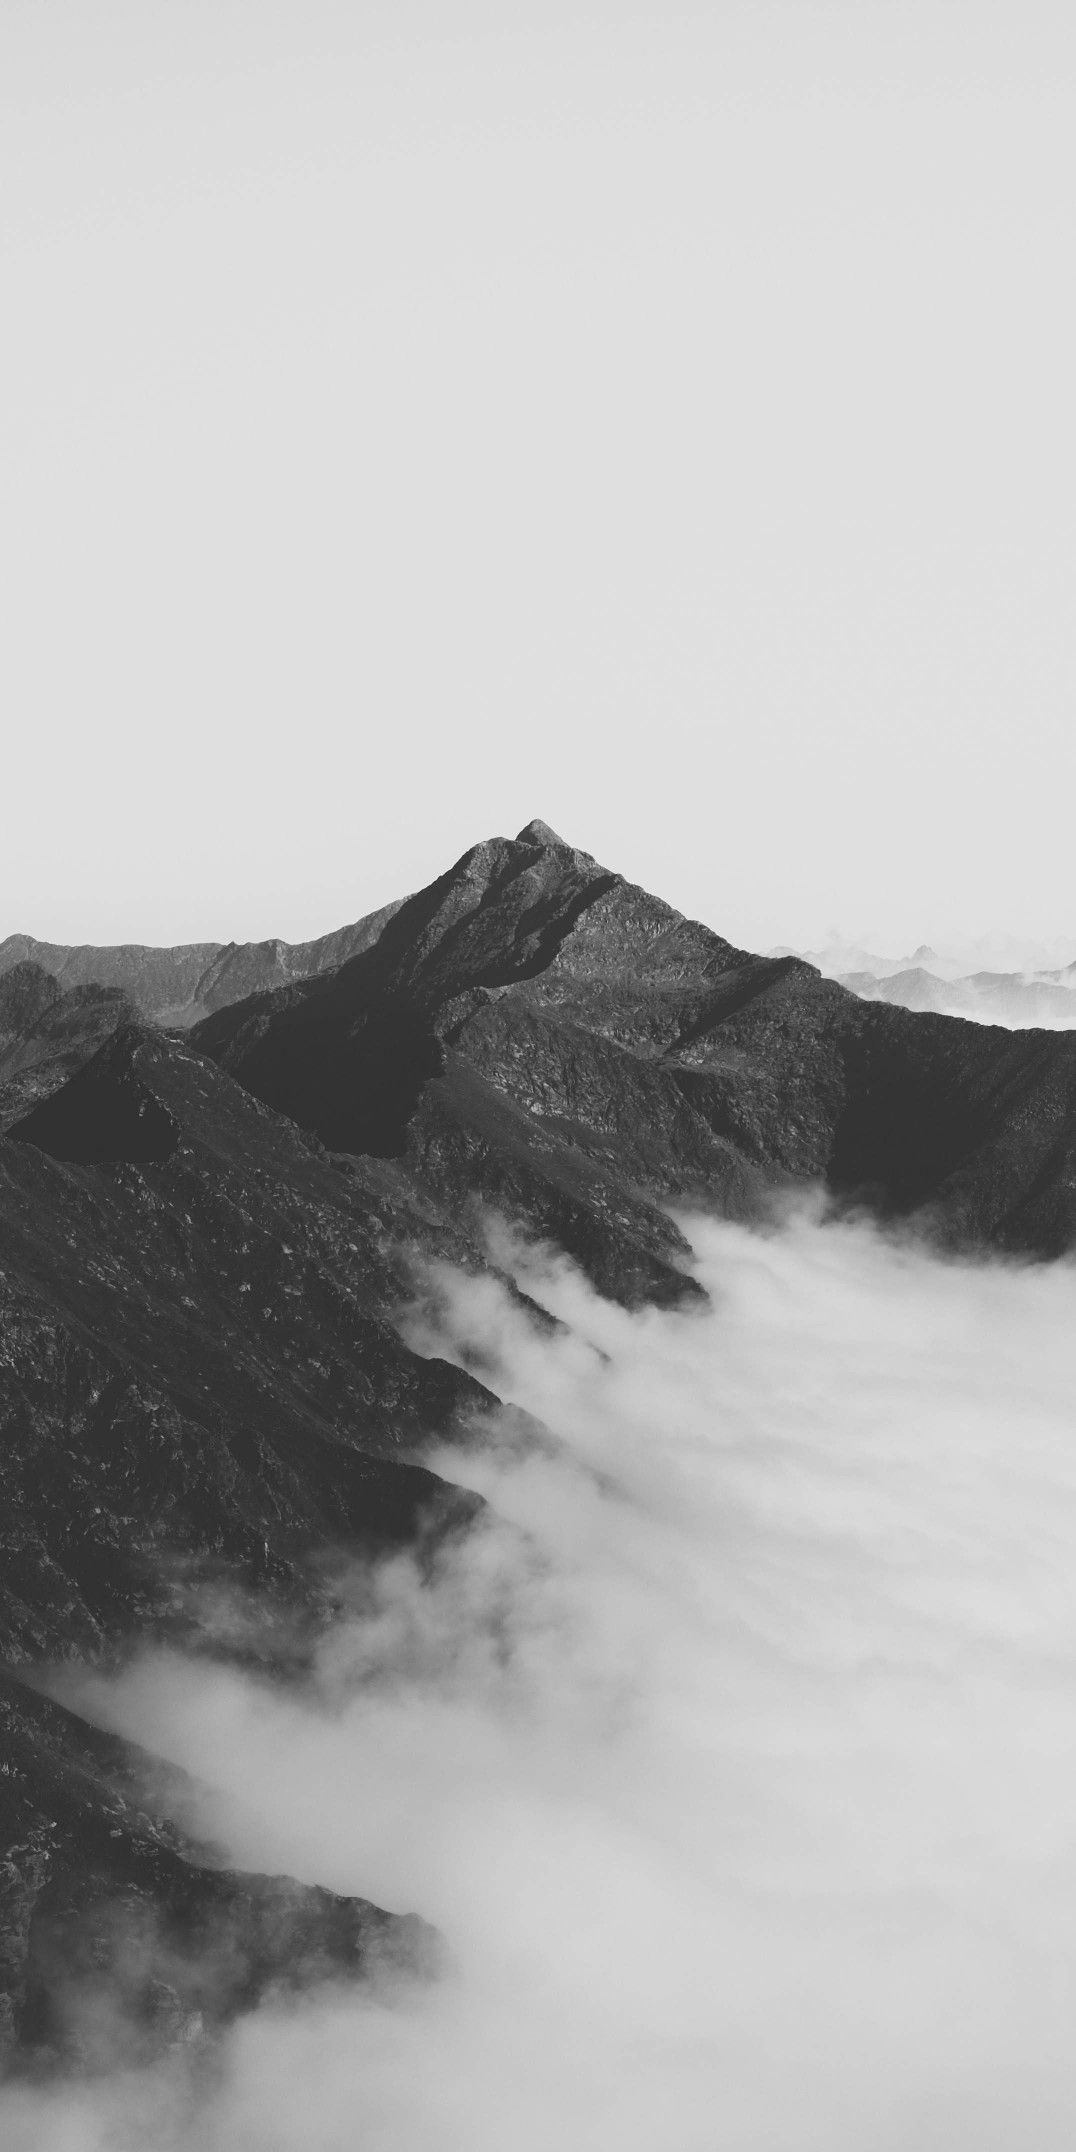 Wallpaper Mountain Black White Clouds Black And White Landscape Black And White Clouds Cloud Wallpaper